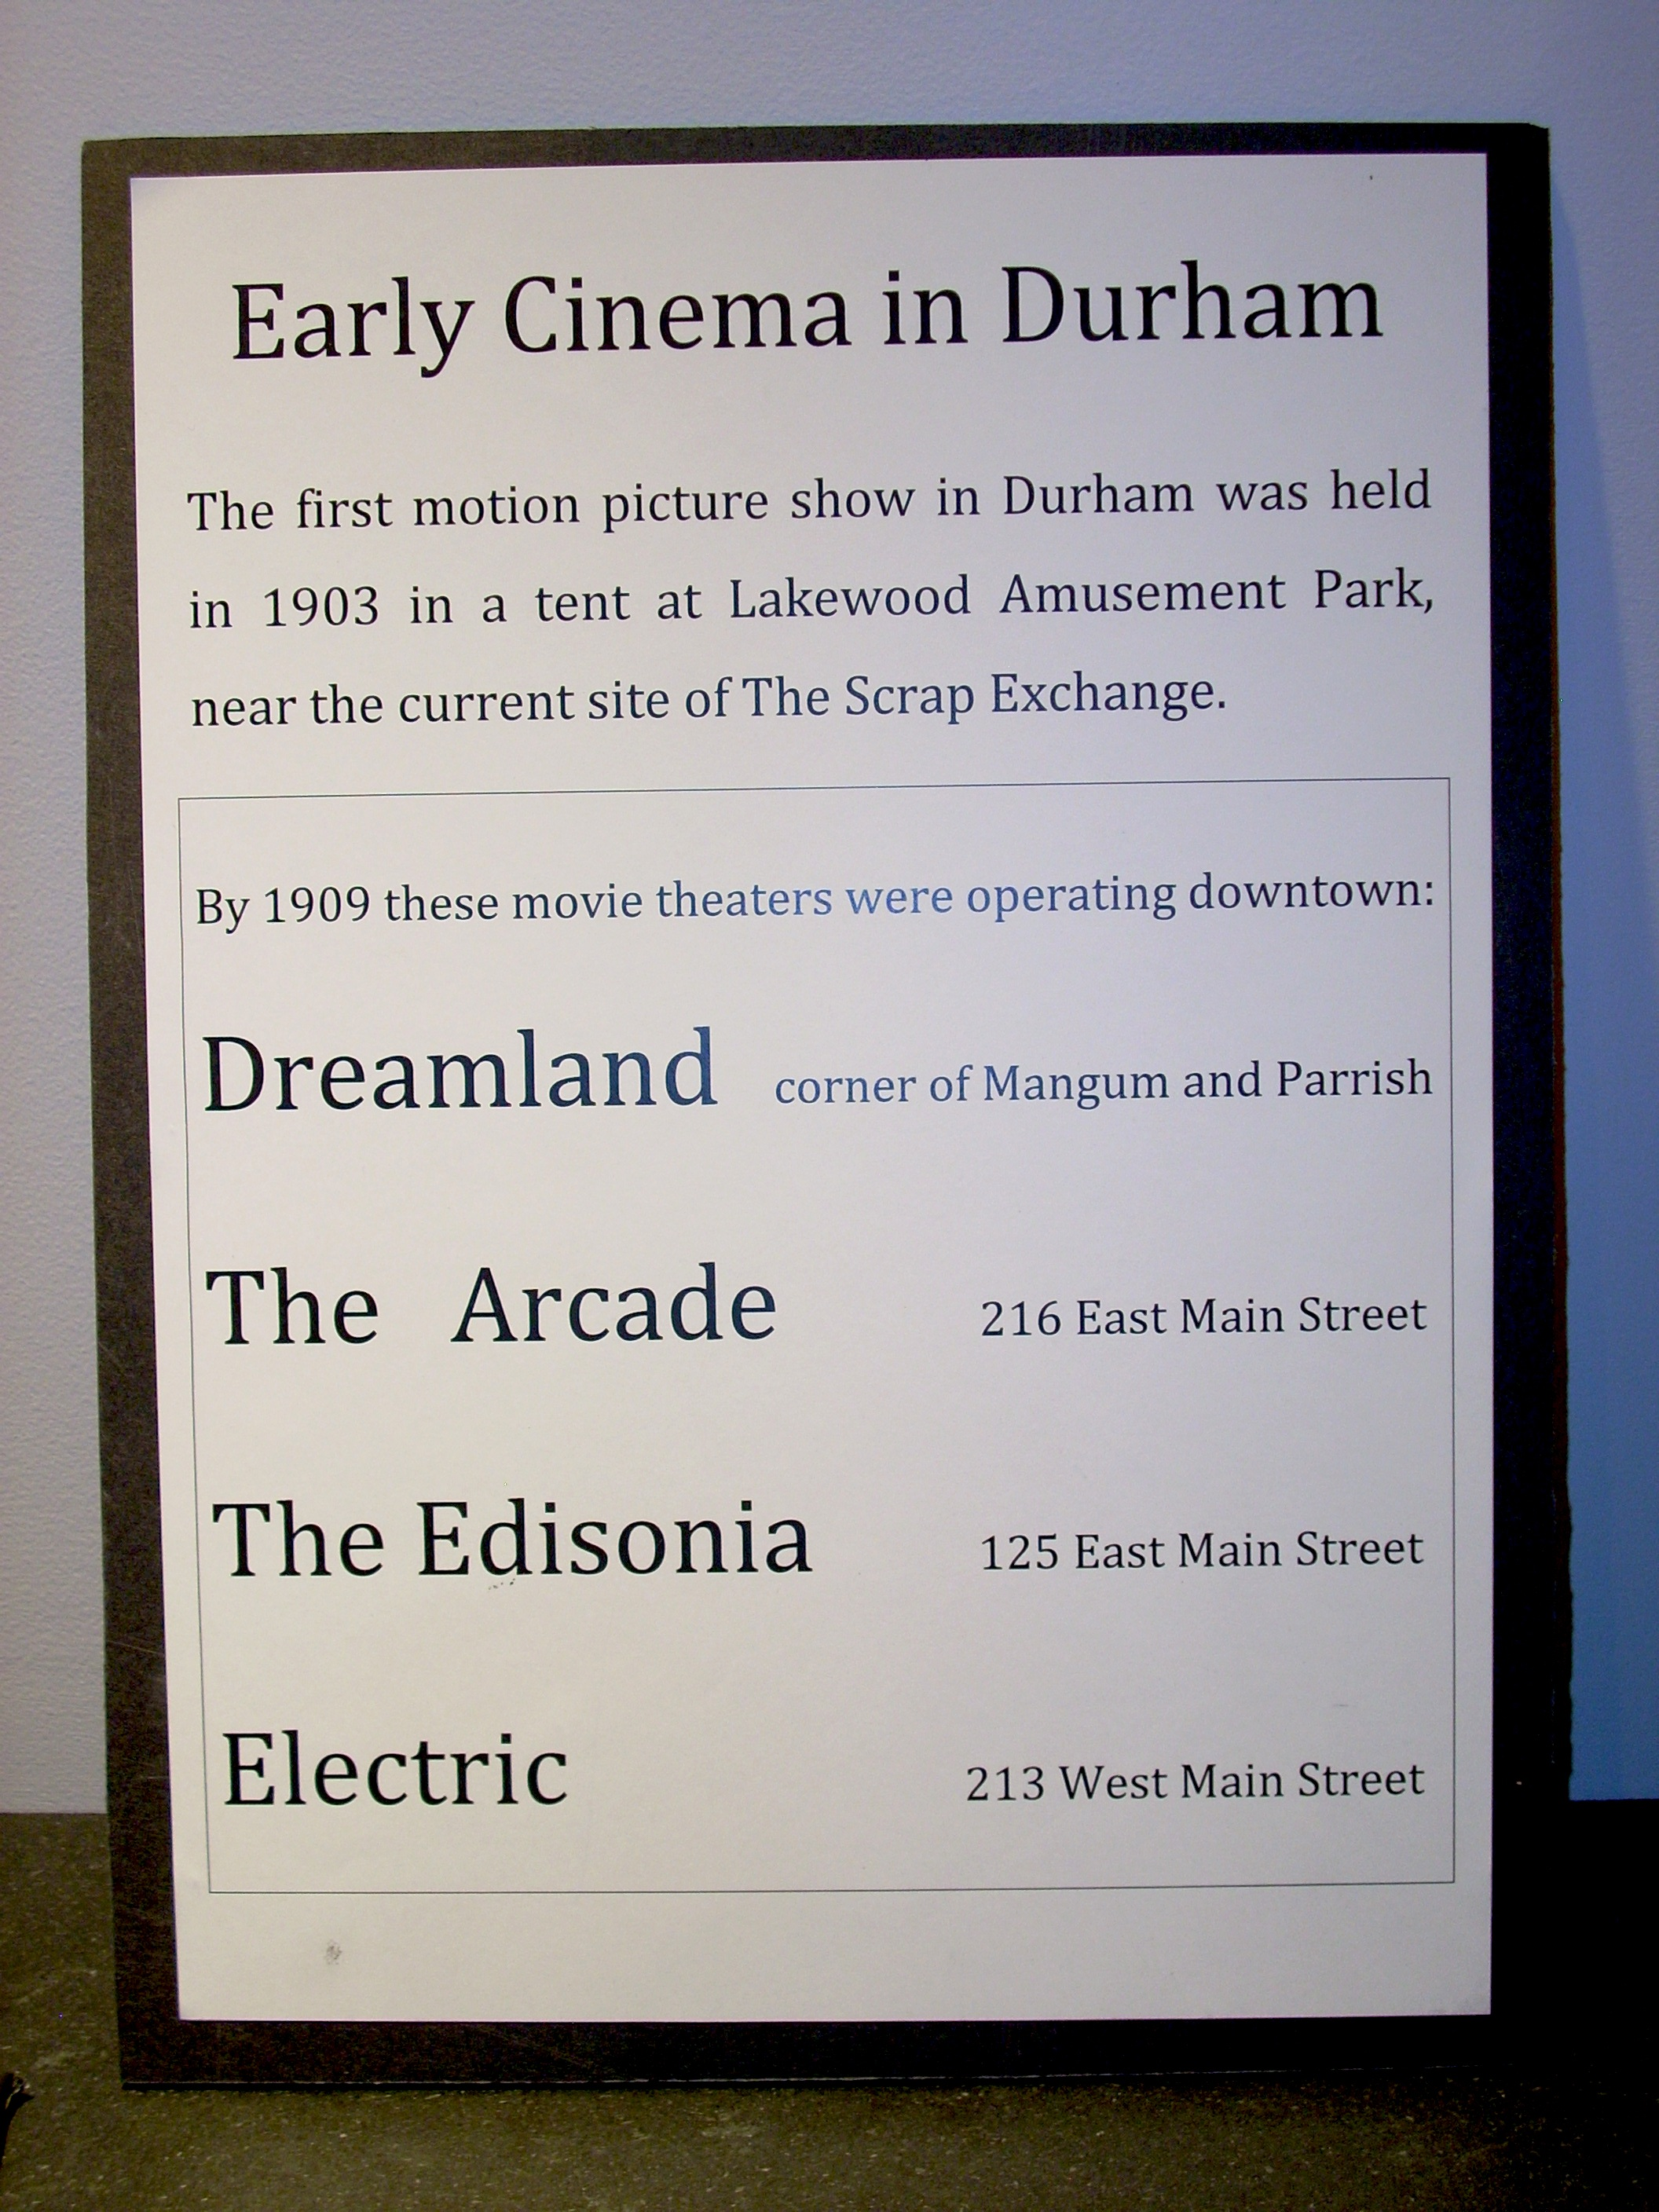 Early Cinema in Durham copy